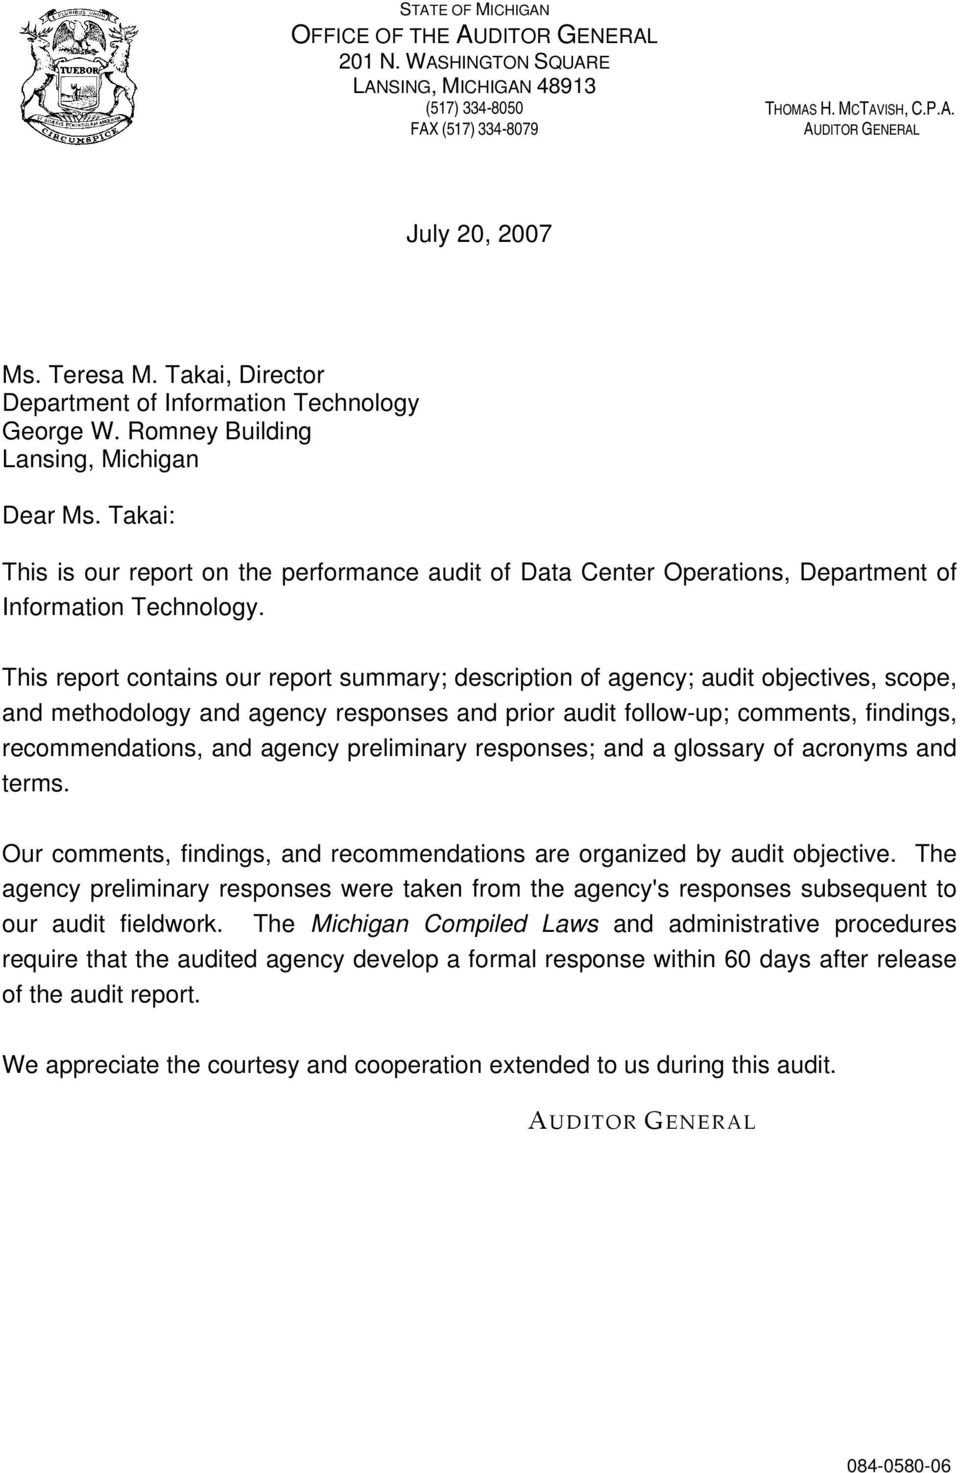 Takai: This is our report on the performance audit of Data Center Operations, Department of Information Technology.